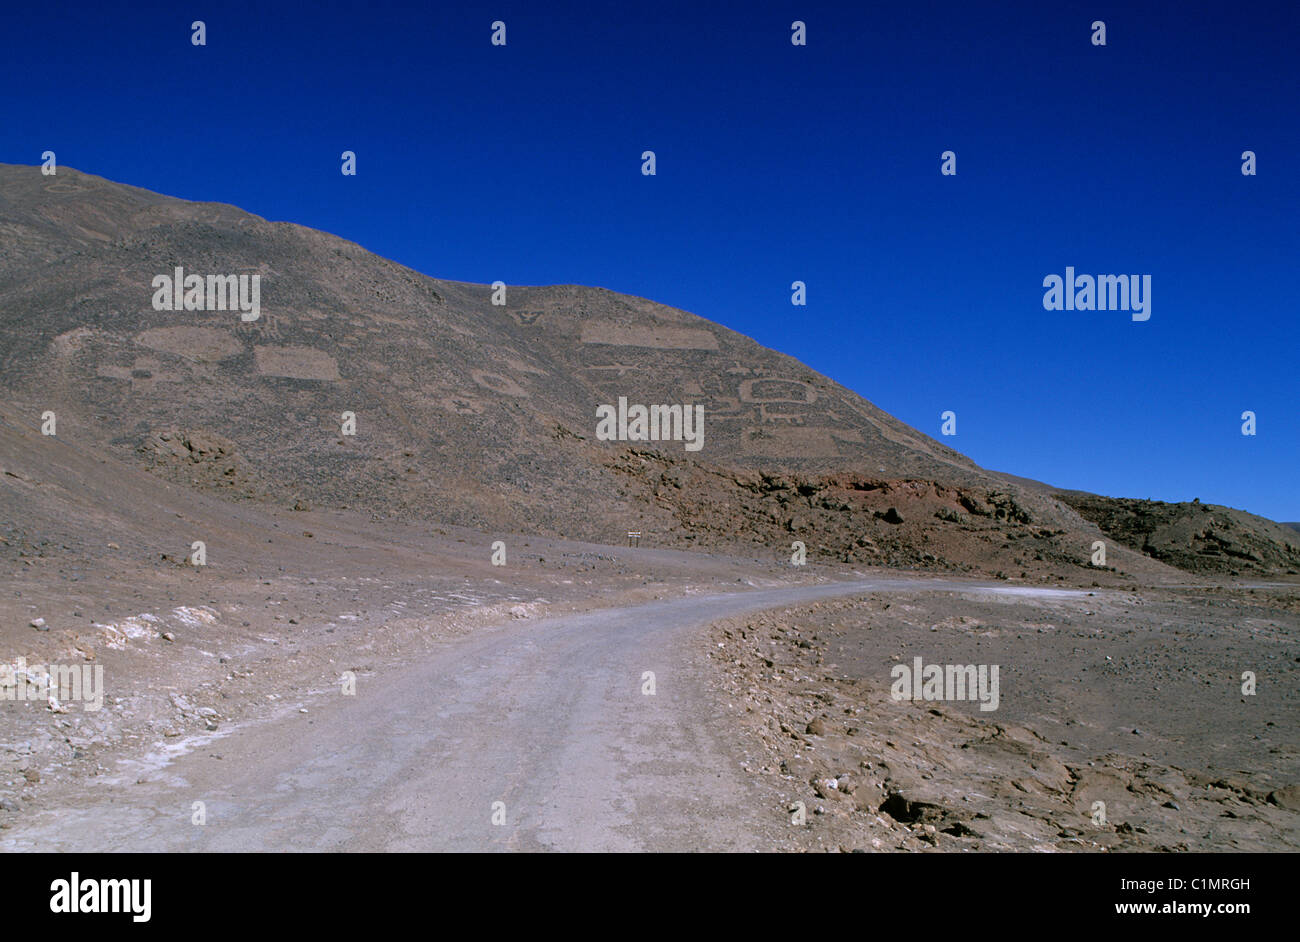 Chile, Region of Tarapaca, approximately Iquique, geoglyphes of los Pintados - Stock Image